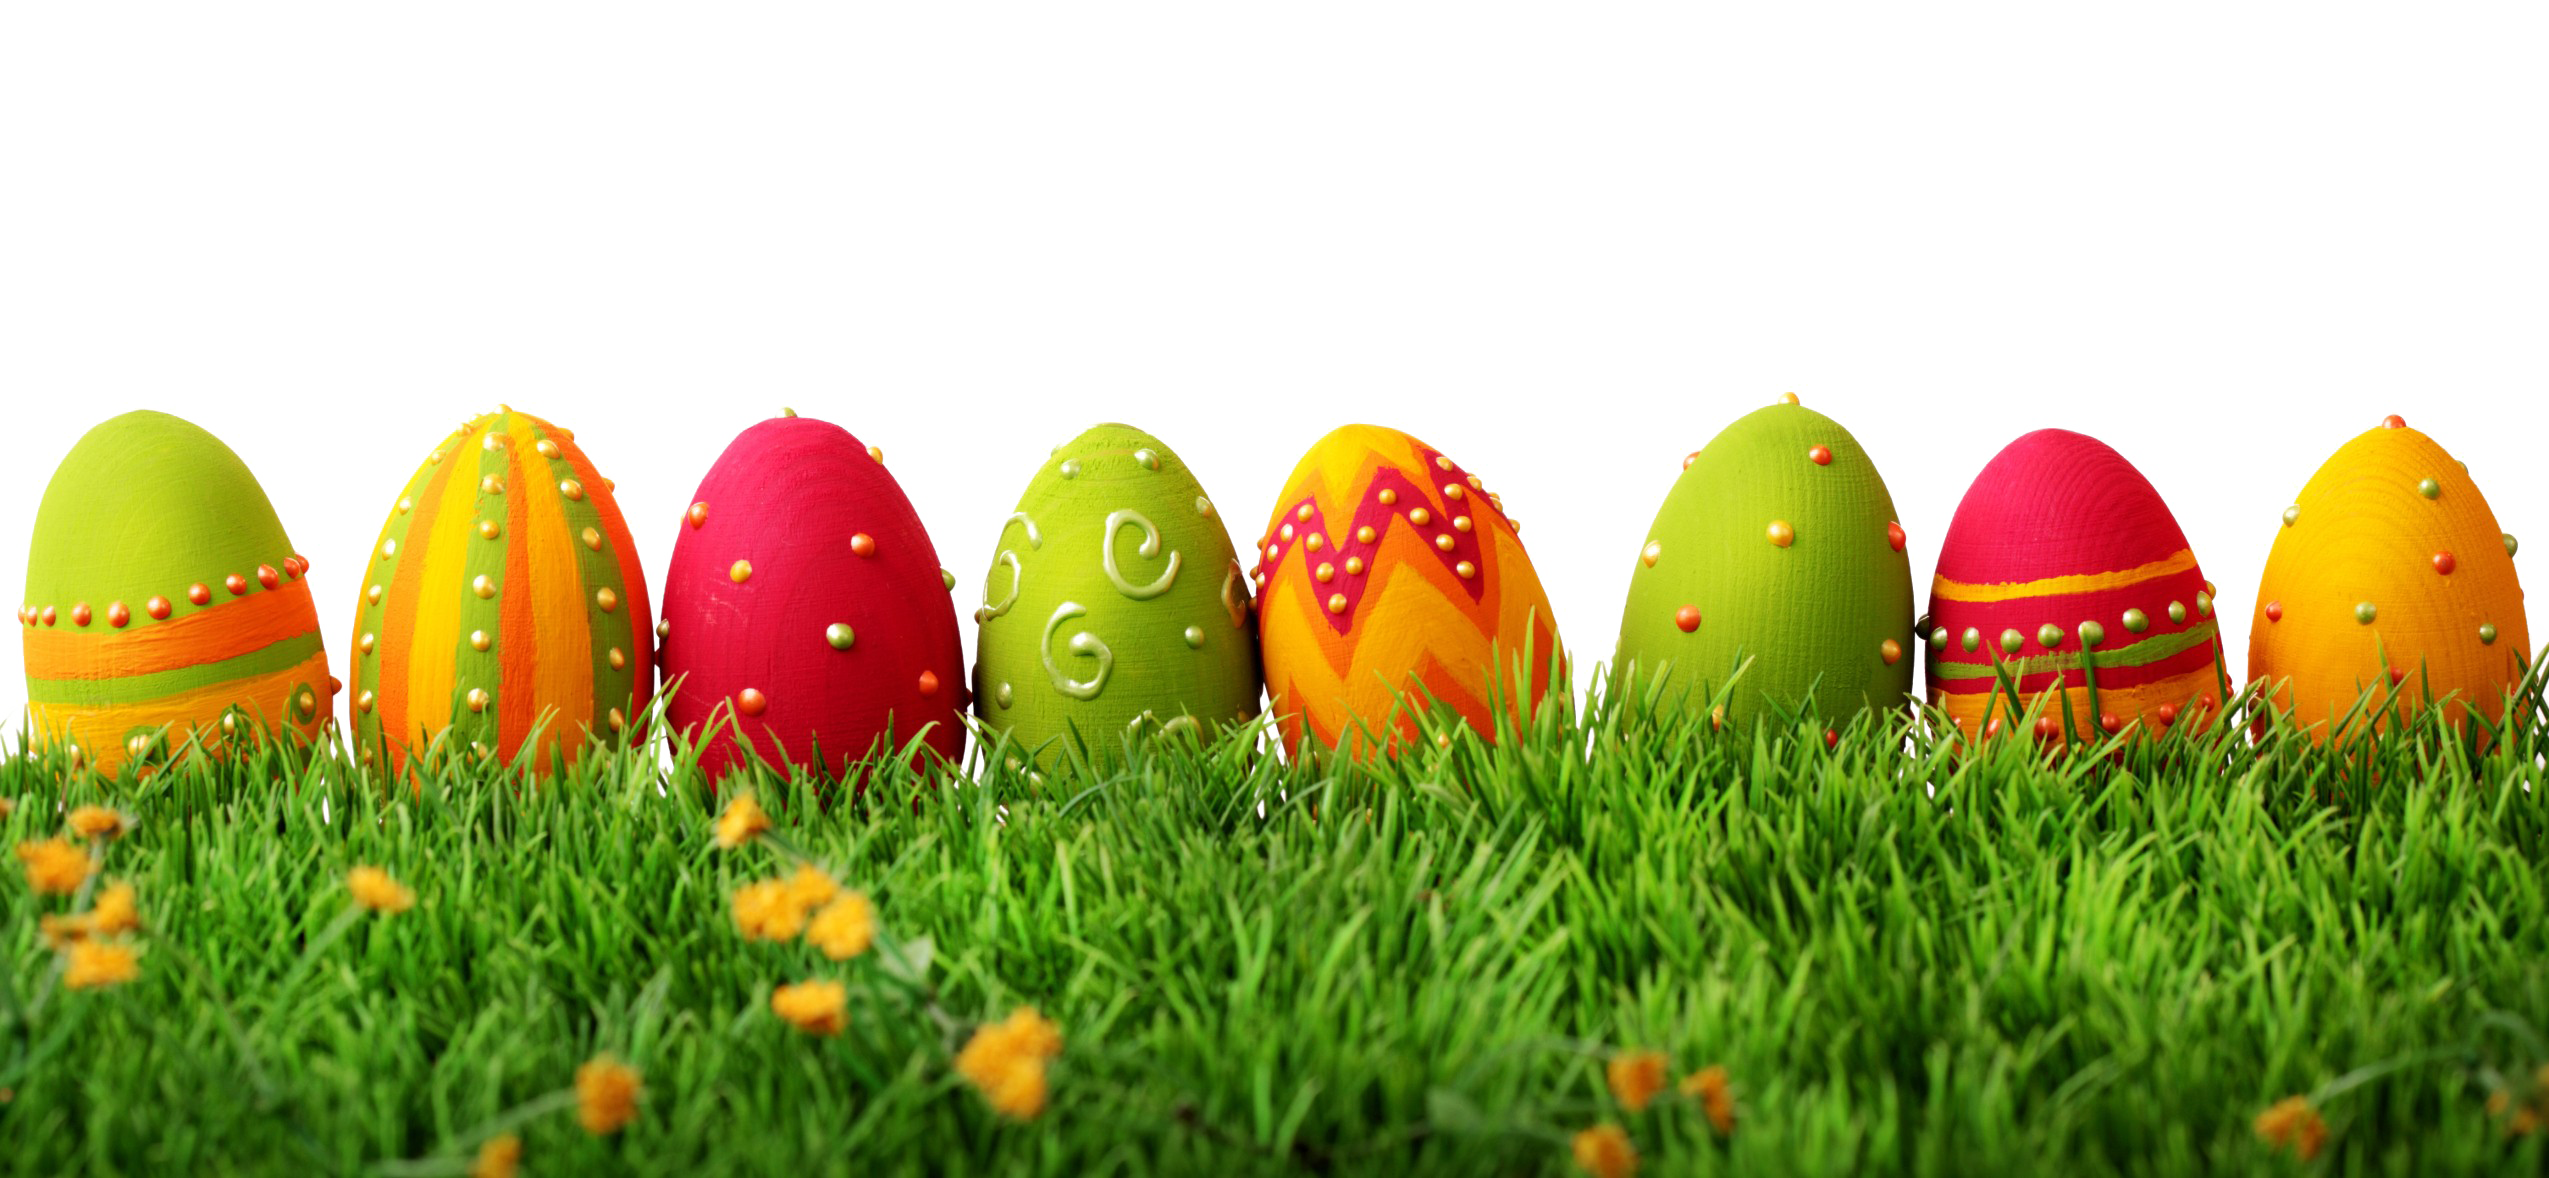 Easter grass png. Eggs image peoplepng com